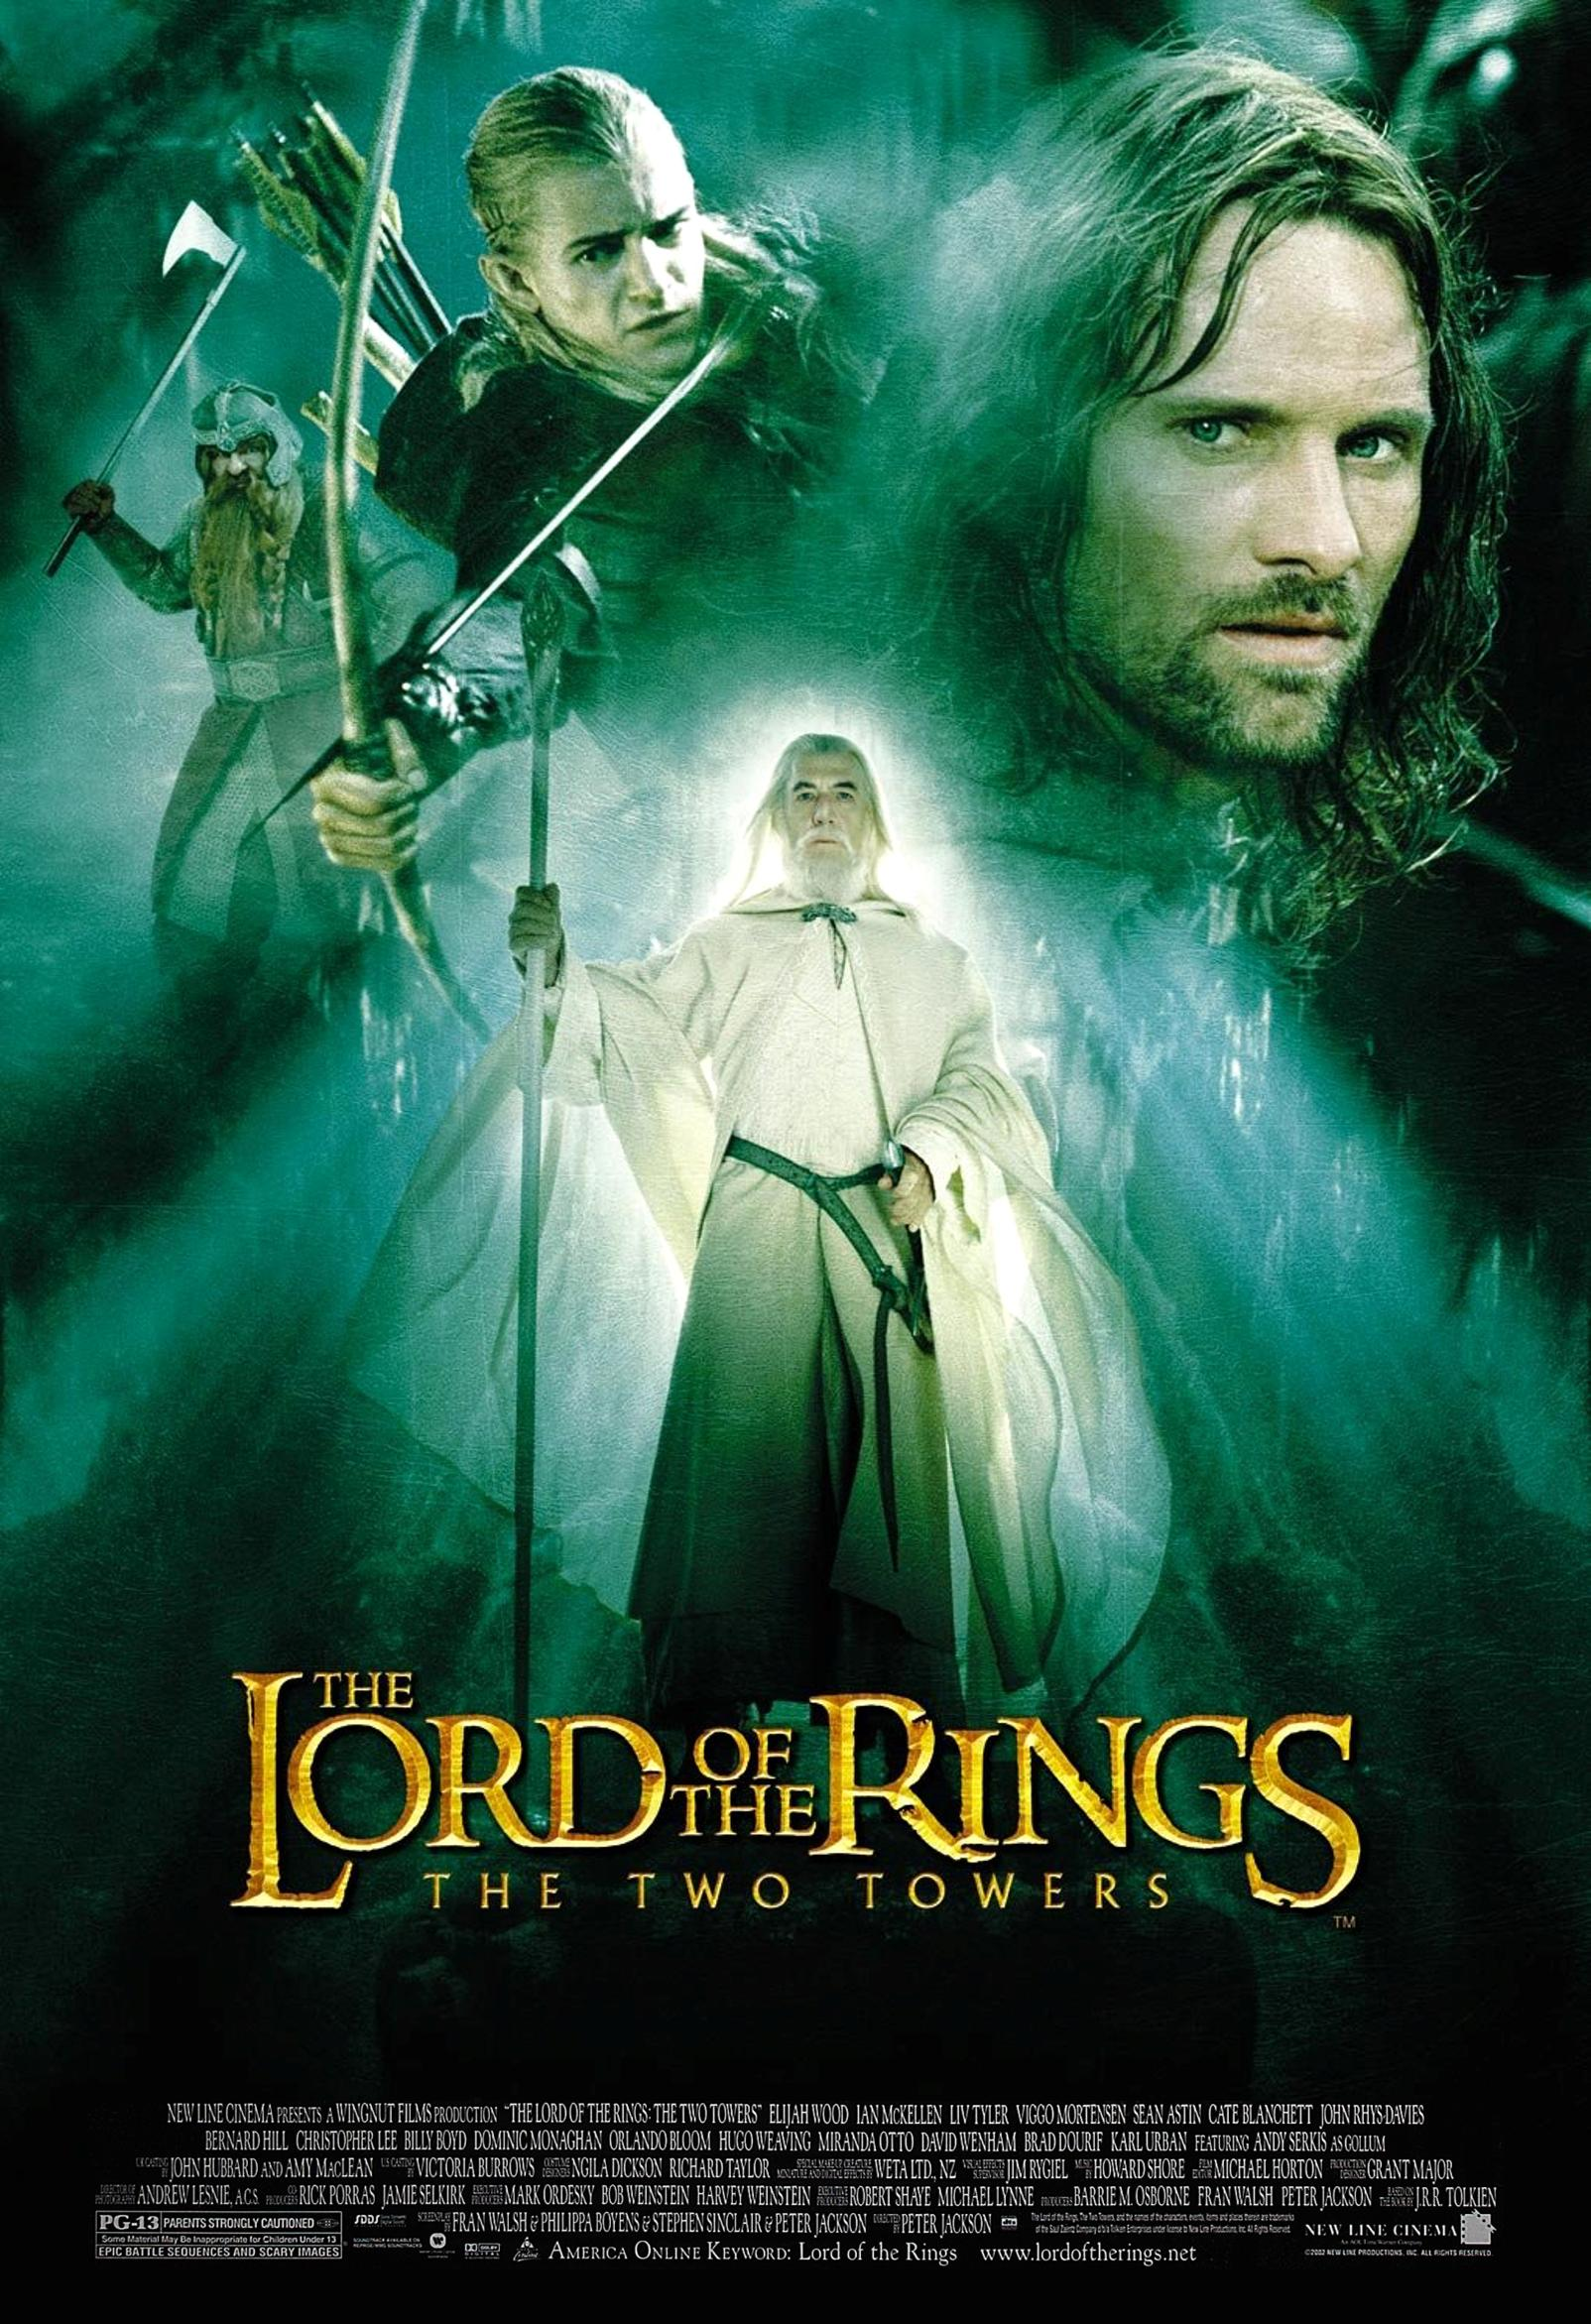 The Lord of the Rings: The Two Towers Technical Specifications